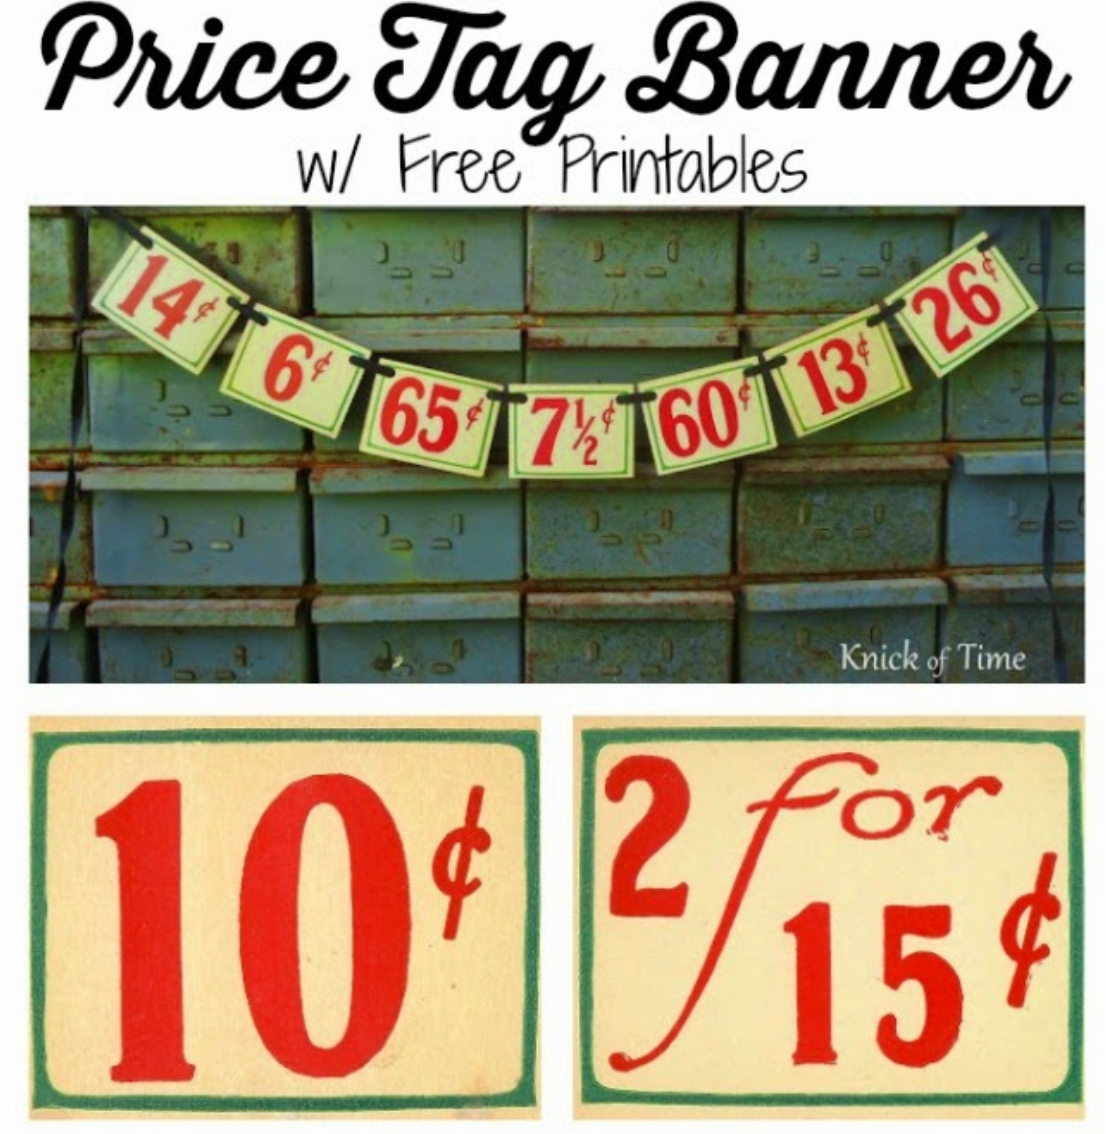 Grocery Store Signs Banners